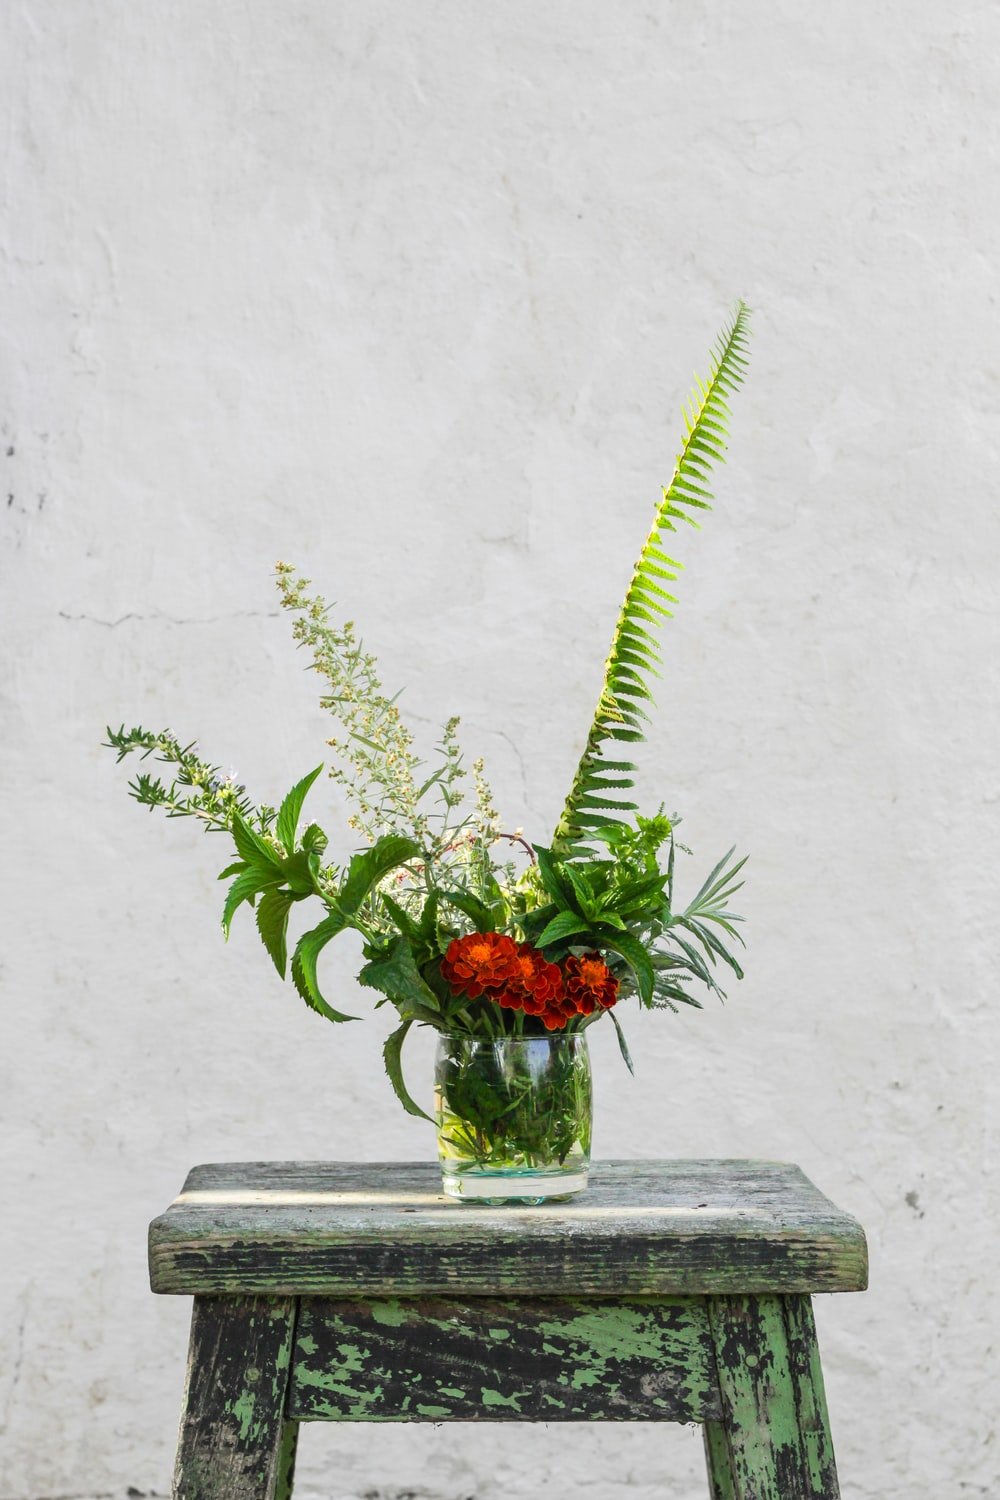 red petaled flowers in glass vase on blue wooden bar stool